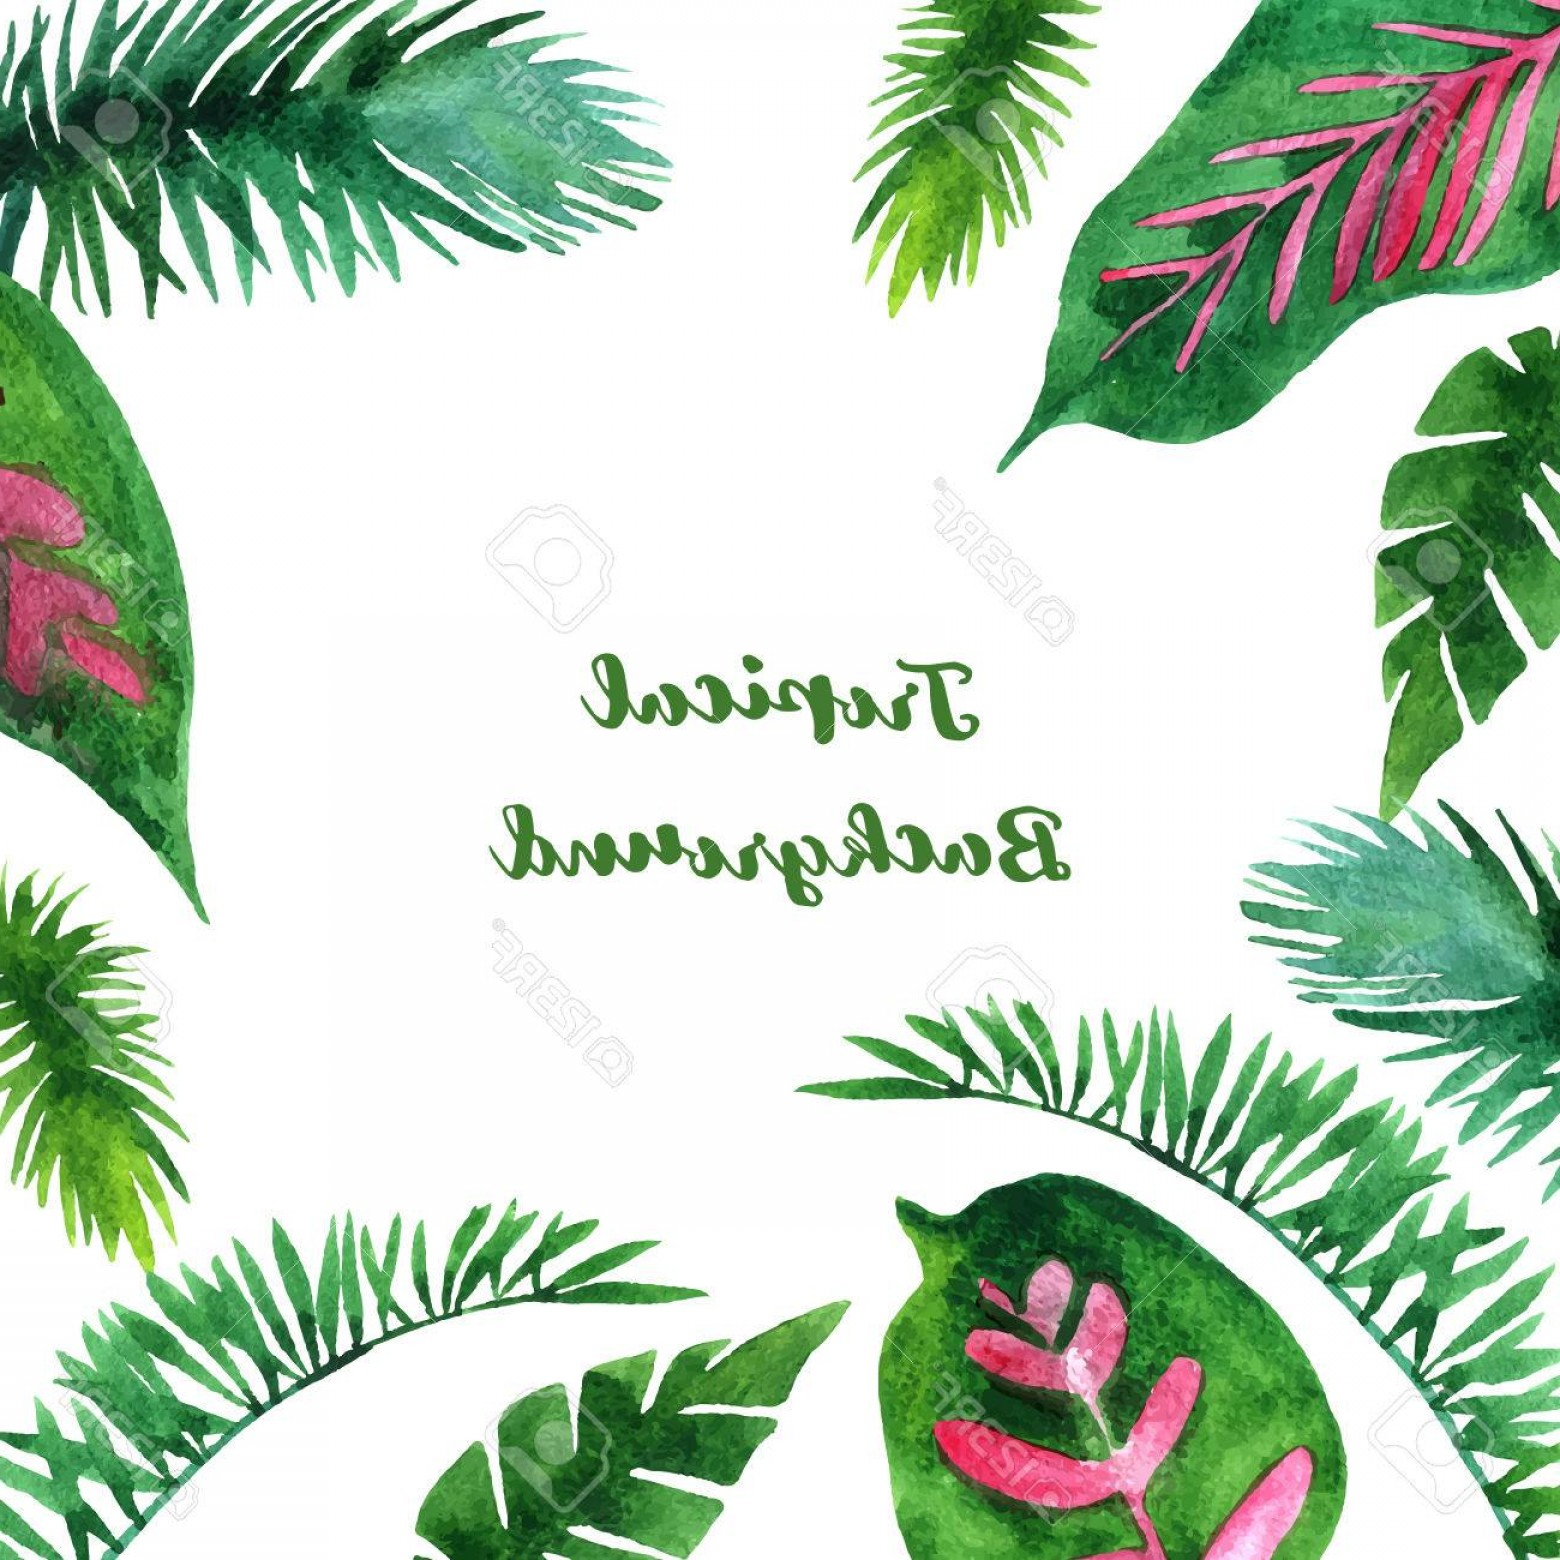 Watercolor Palm Tree Vector: Photostock Vector Background With Watercolor Green Leaves Of Palm Tree Exotic Leaves Tropical Nature Background Hand D